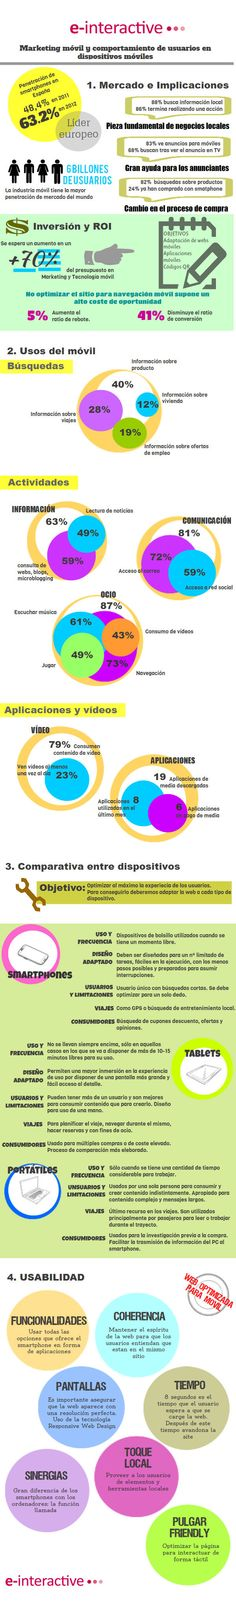 Las claves del marketing móvil #infografia #infographic